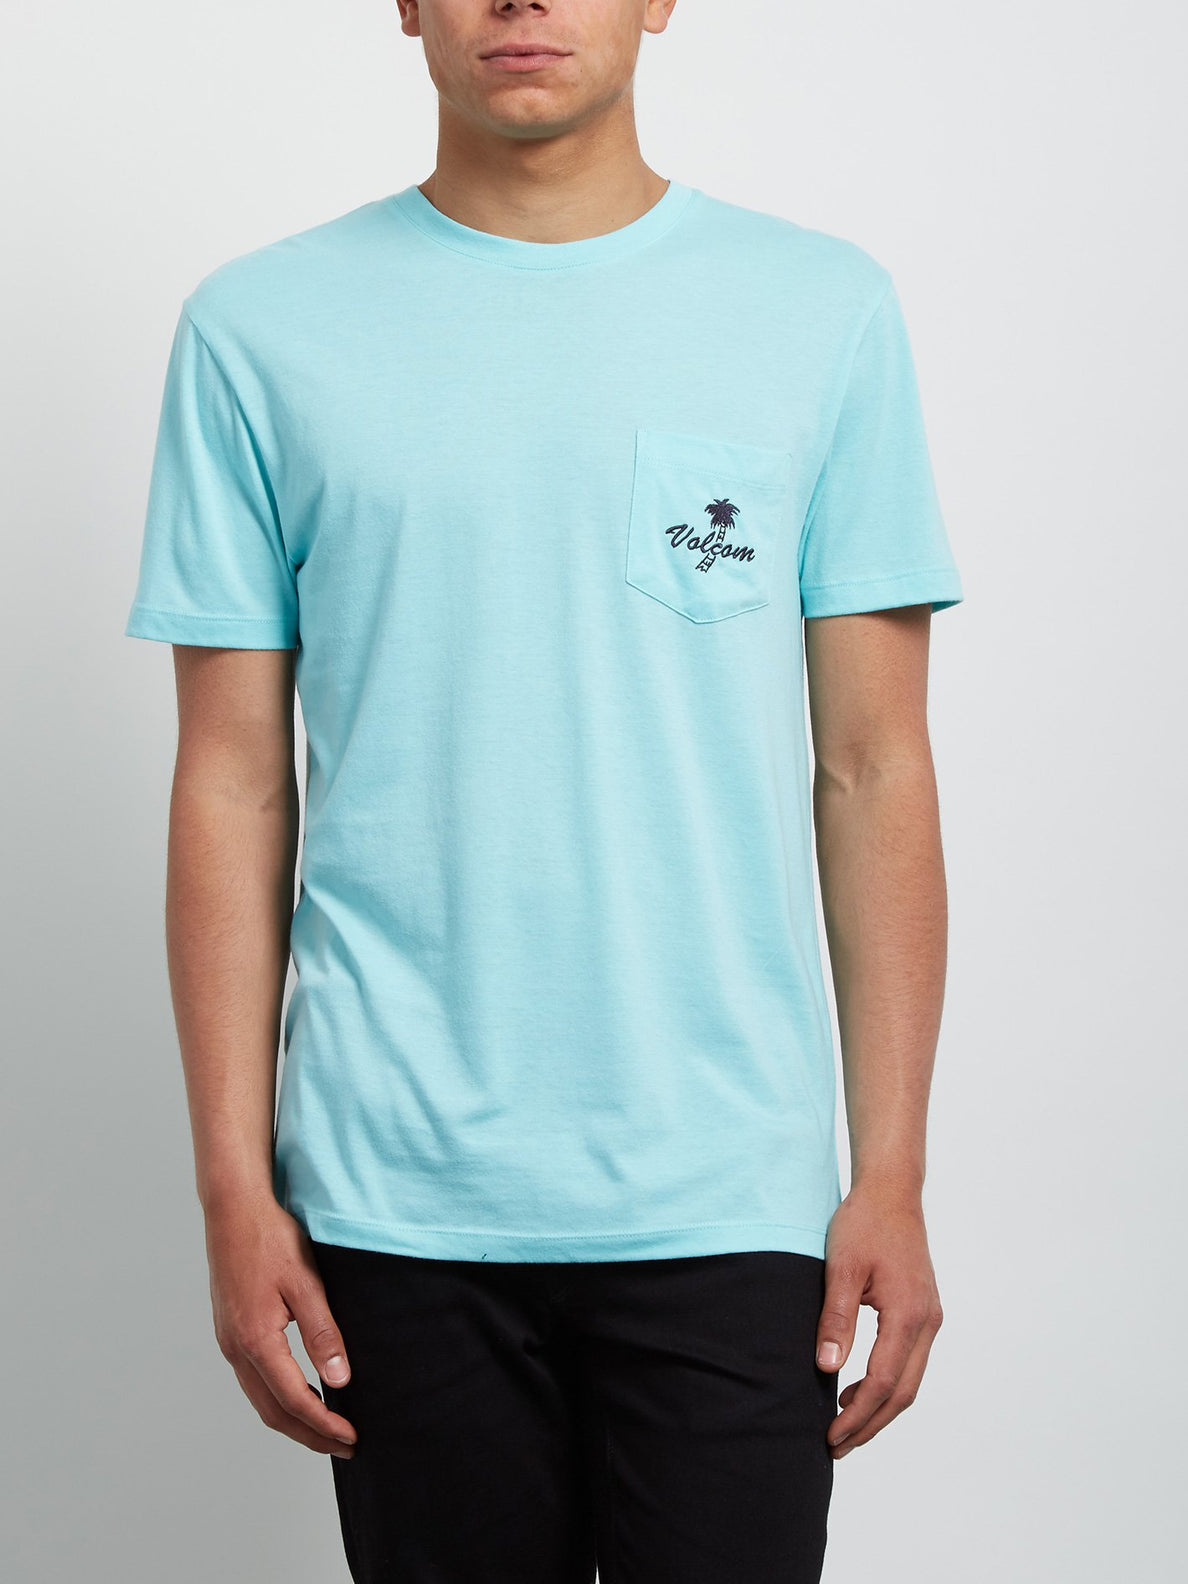 Last Resort Tee - Pale Aqua